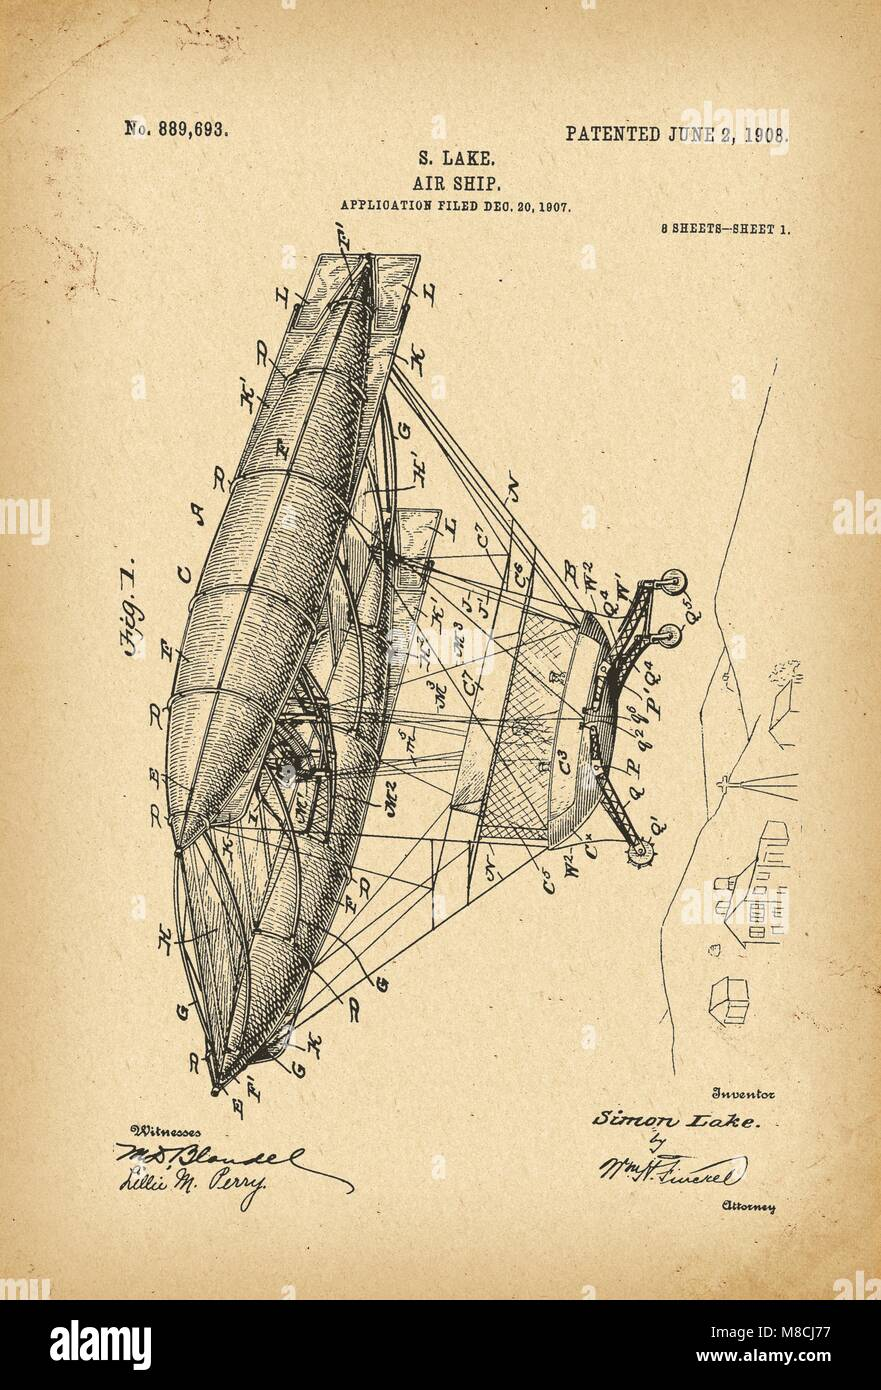 medium resolution of 1907 patent flying machine air ship history invention